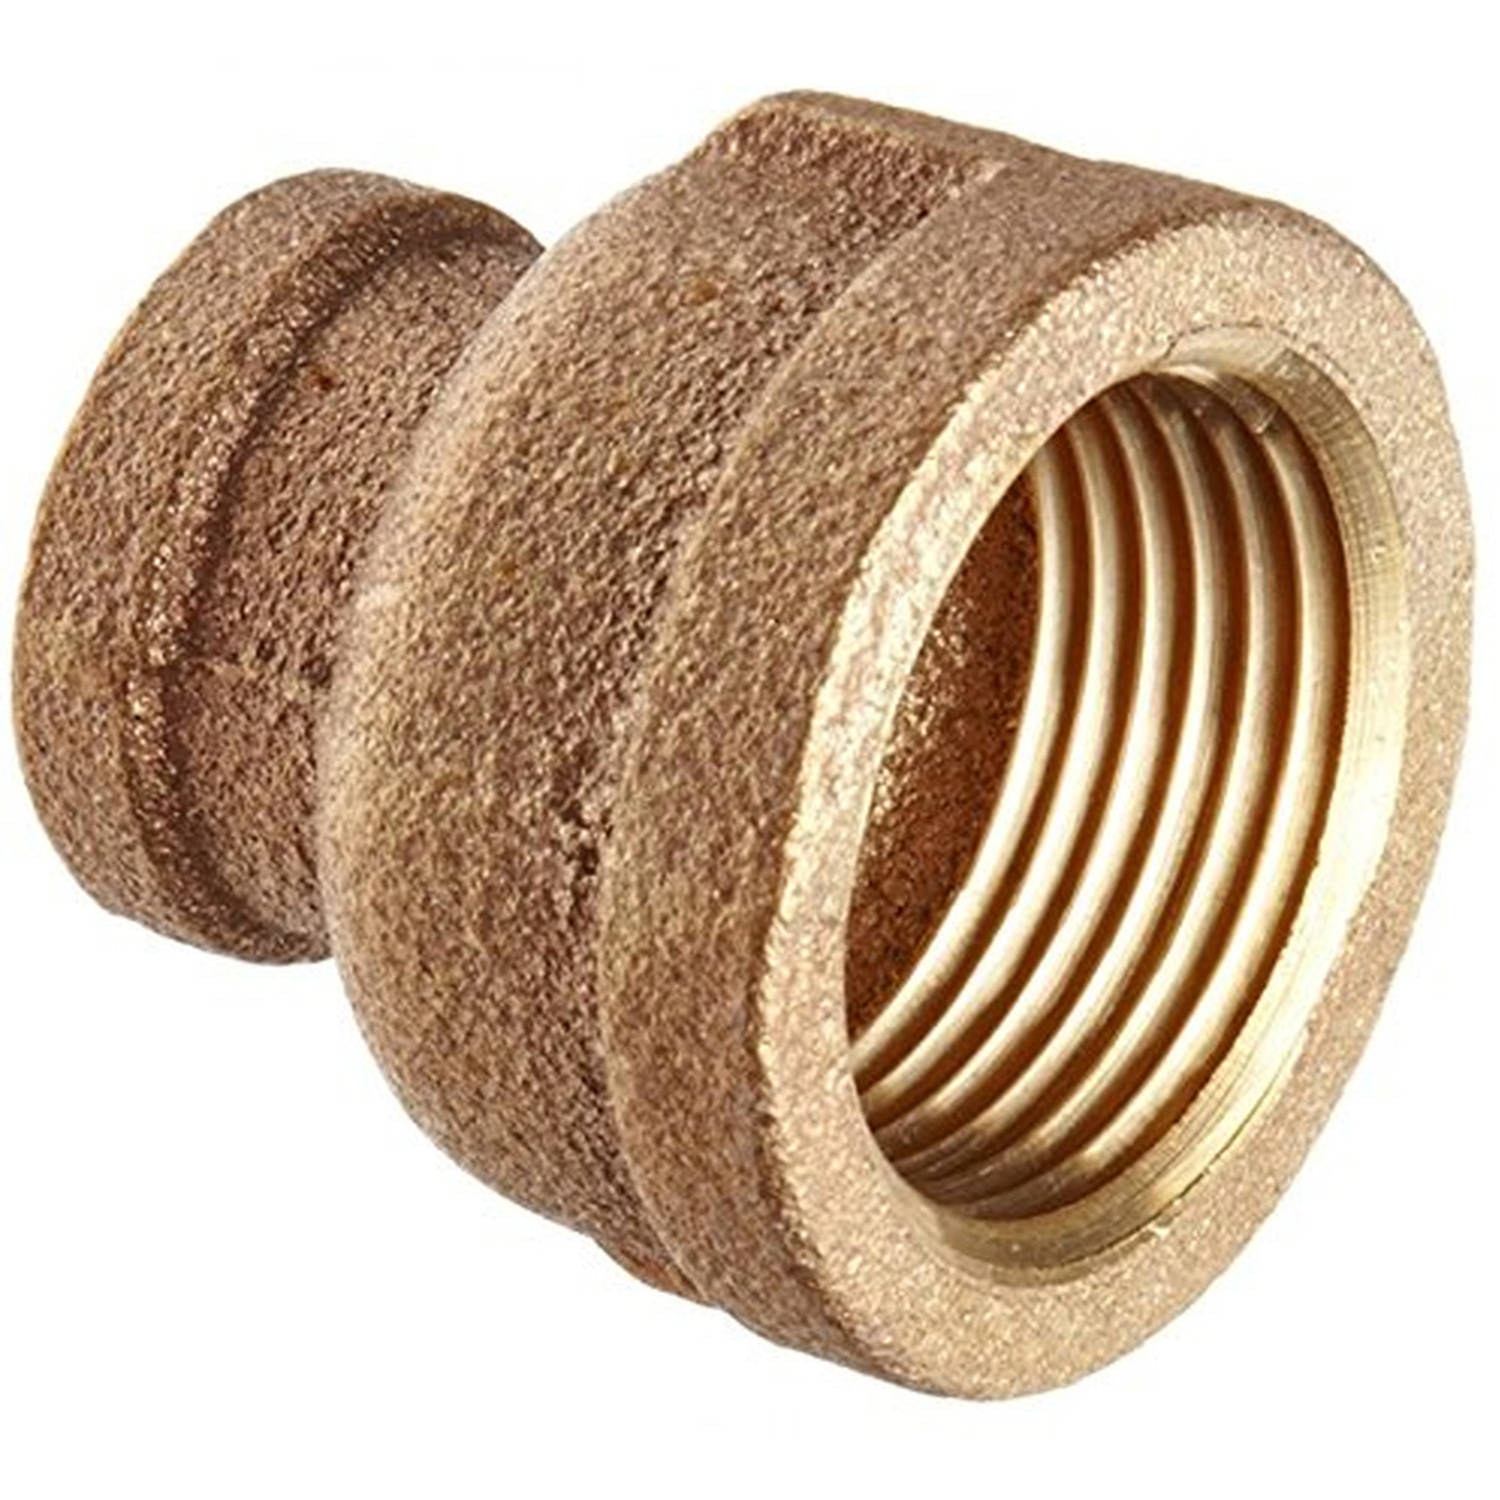 "Everflow Supplies BRRC0140-NL 1/4"" x 1/8"" Brass Reducing Coupling, Lead Free"